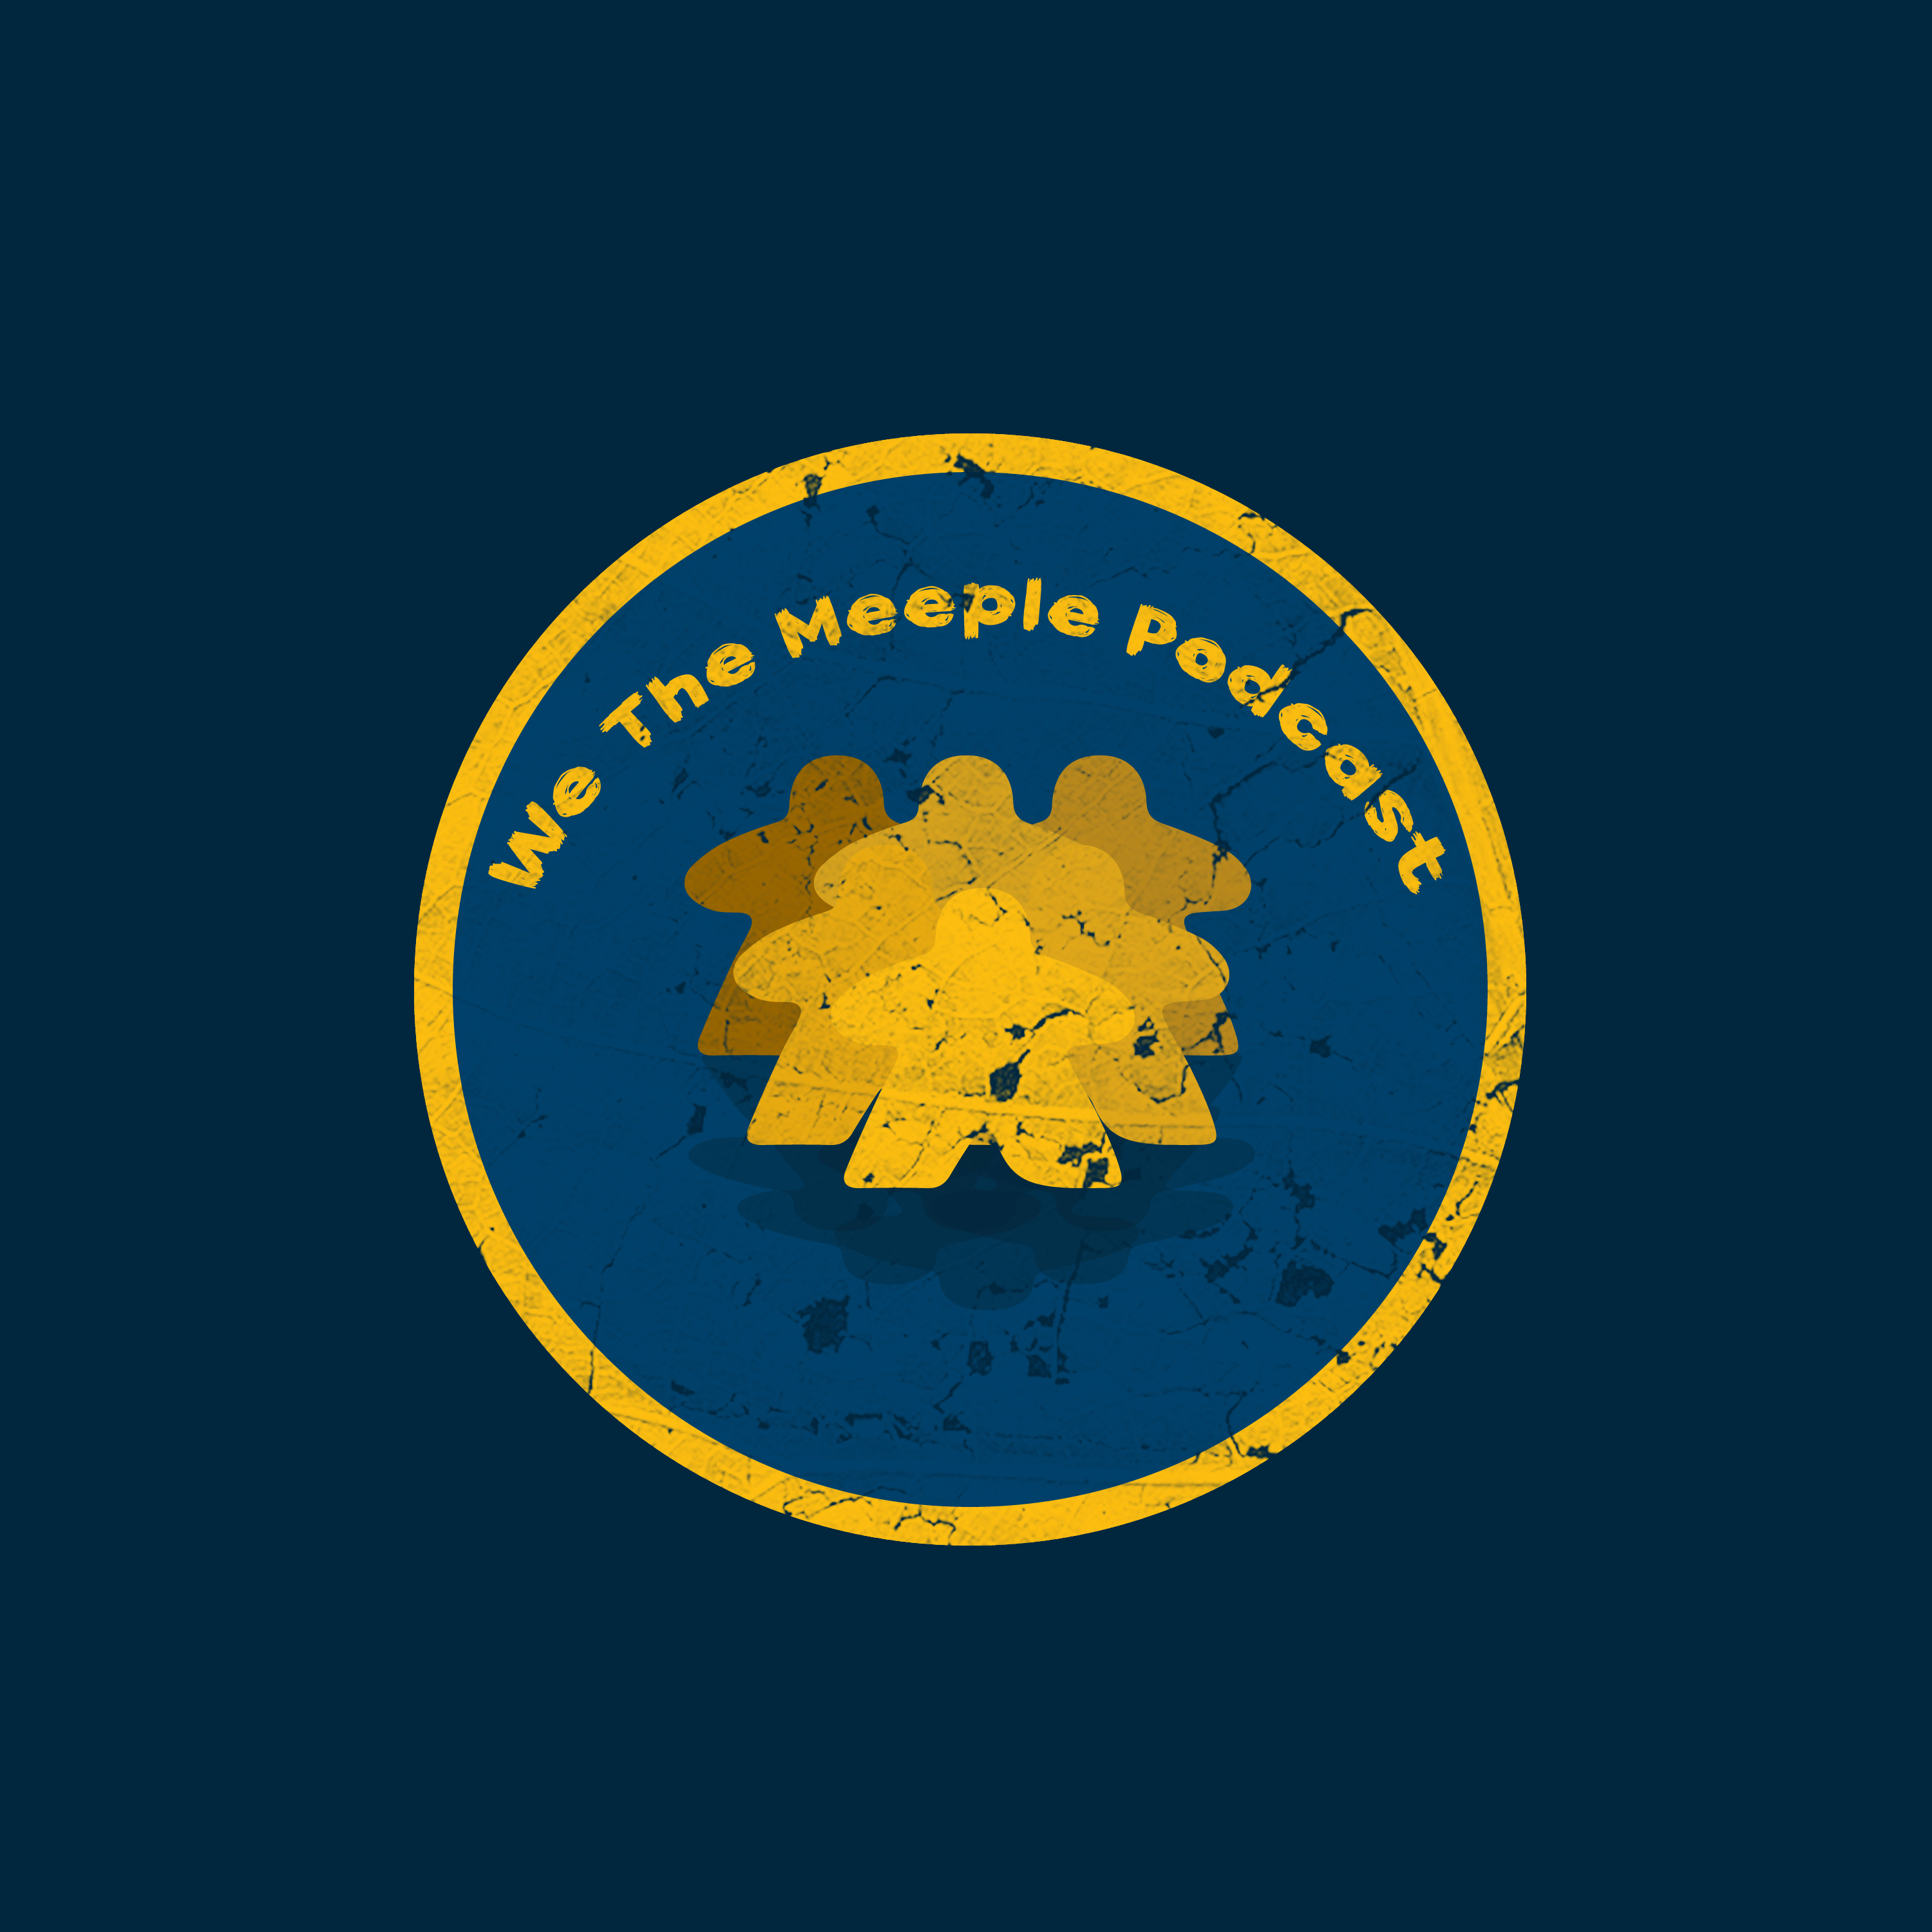 We The Meeple Podcast